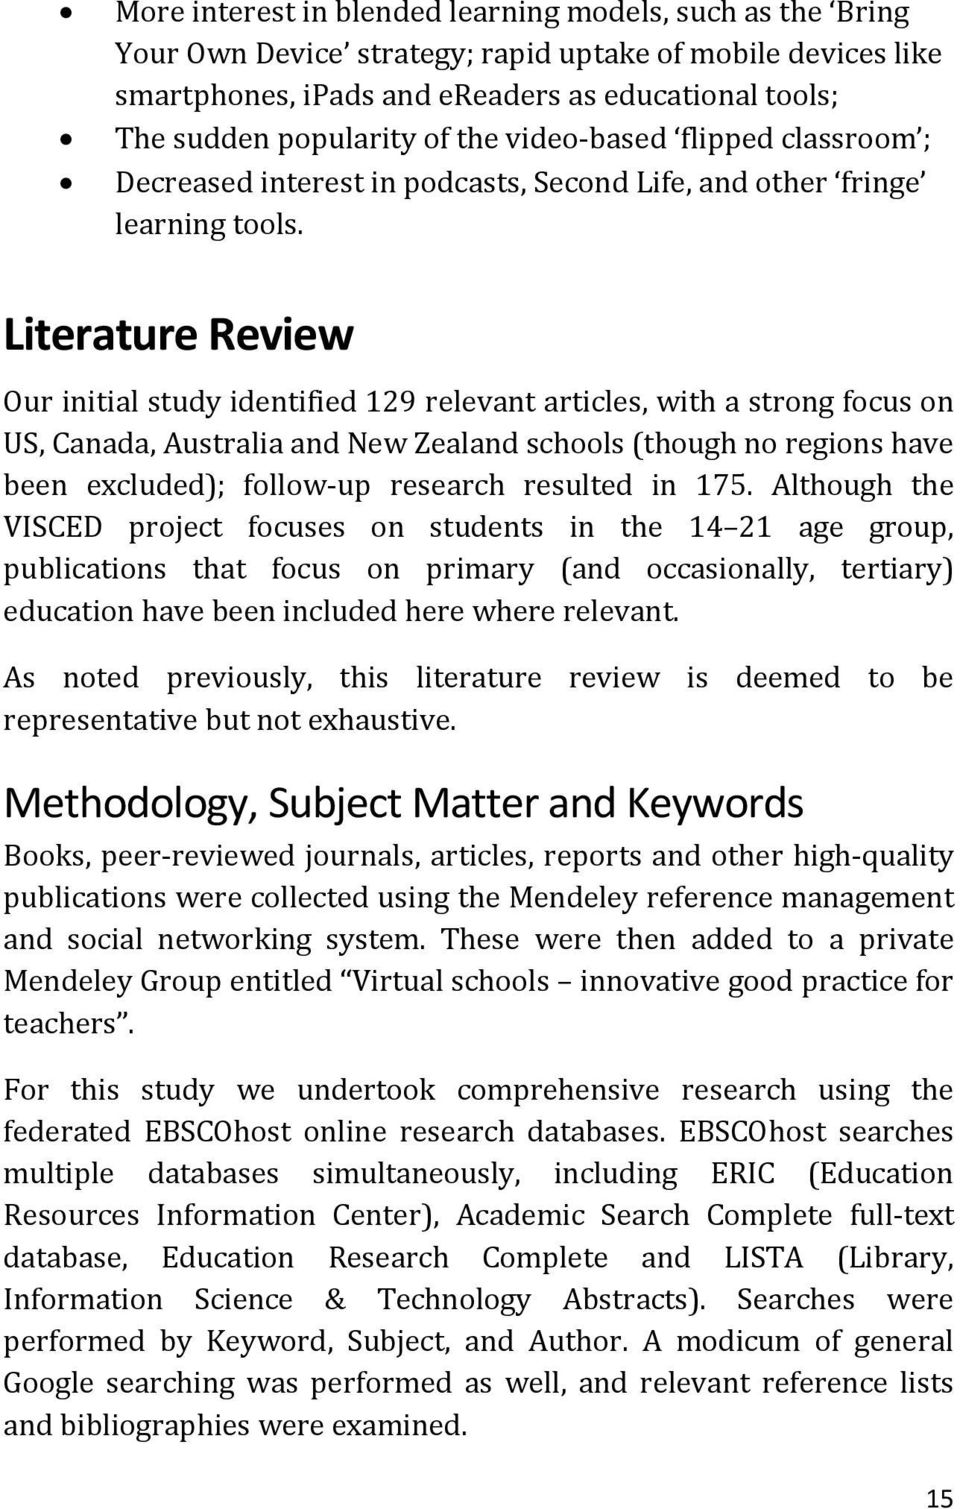 Literature Review Our initial study identified 129 relevant articles, with a strong focus on US, Canada, Australia and New Zealand schools (though no regions have been excluded); follow-up research